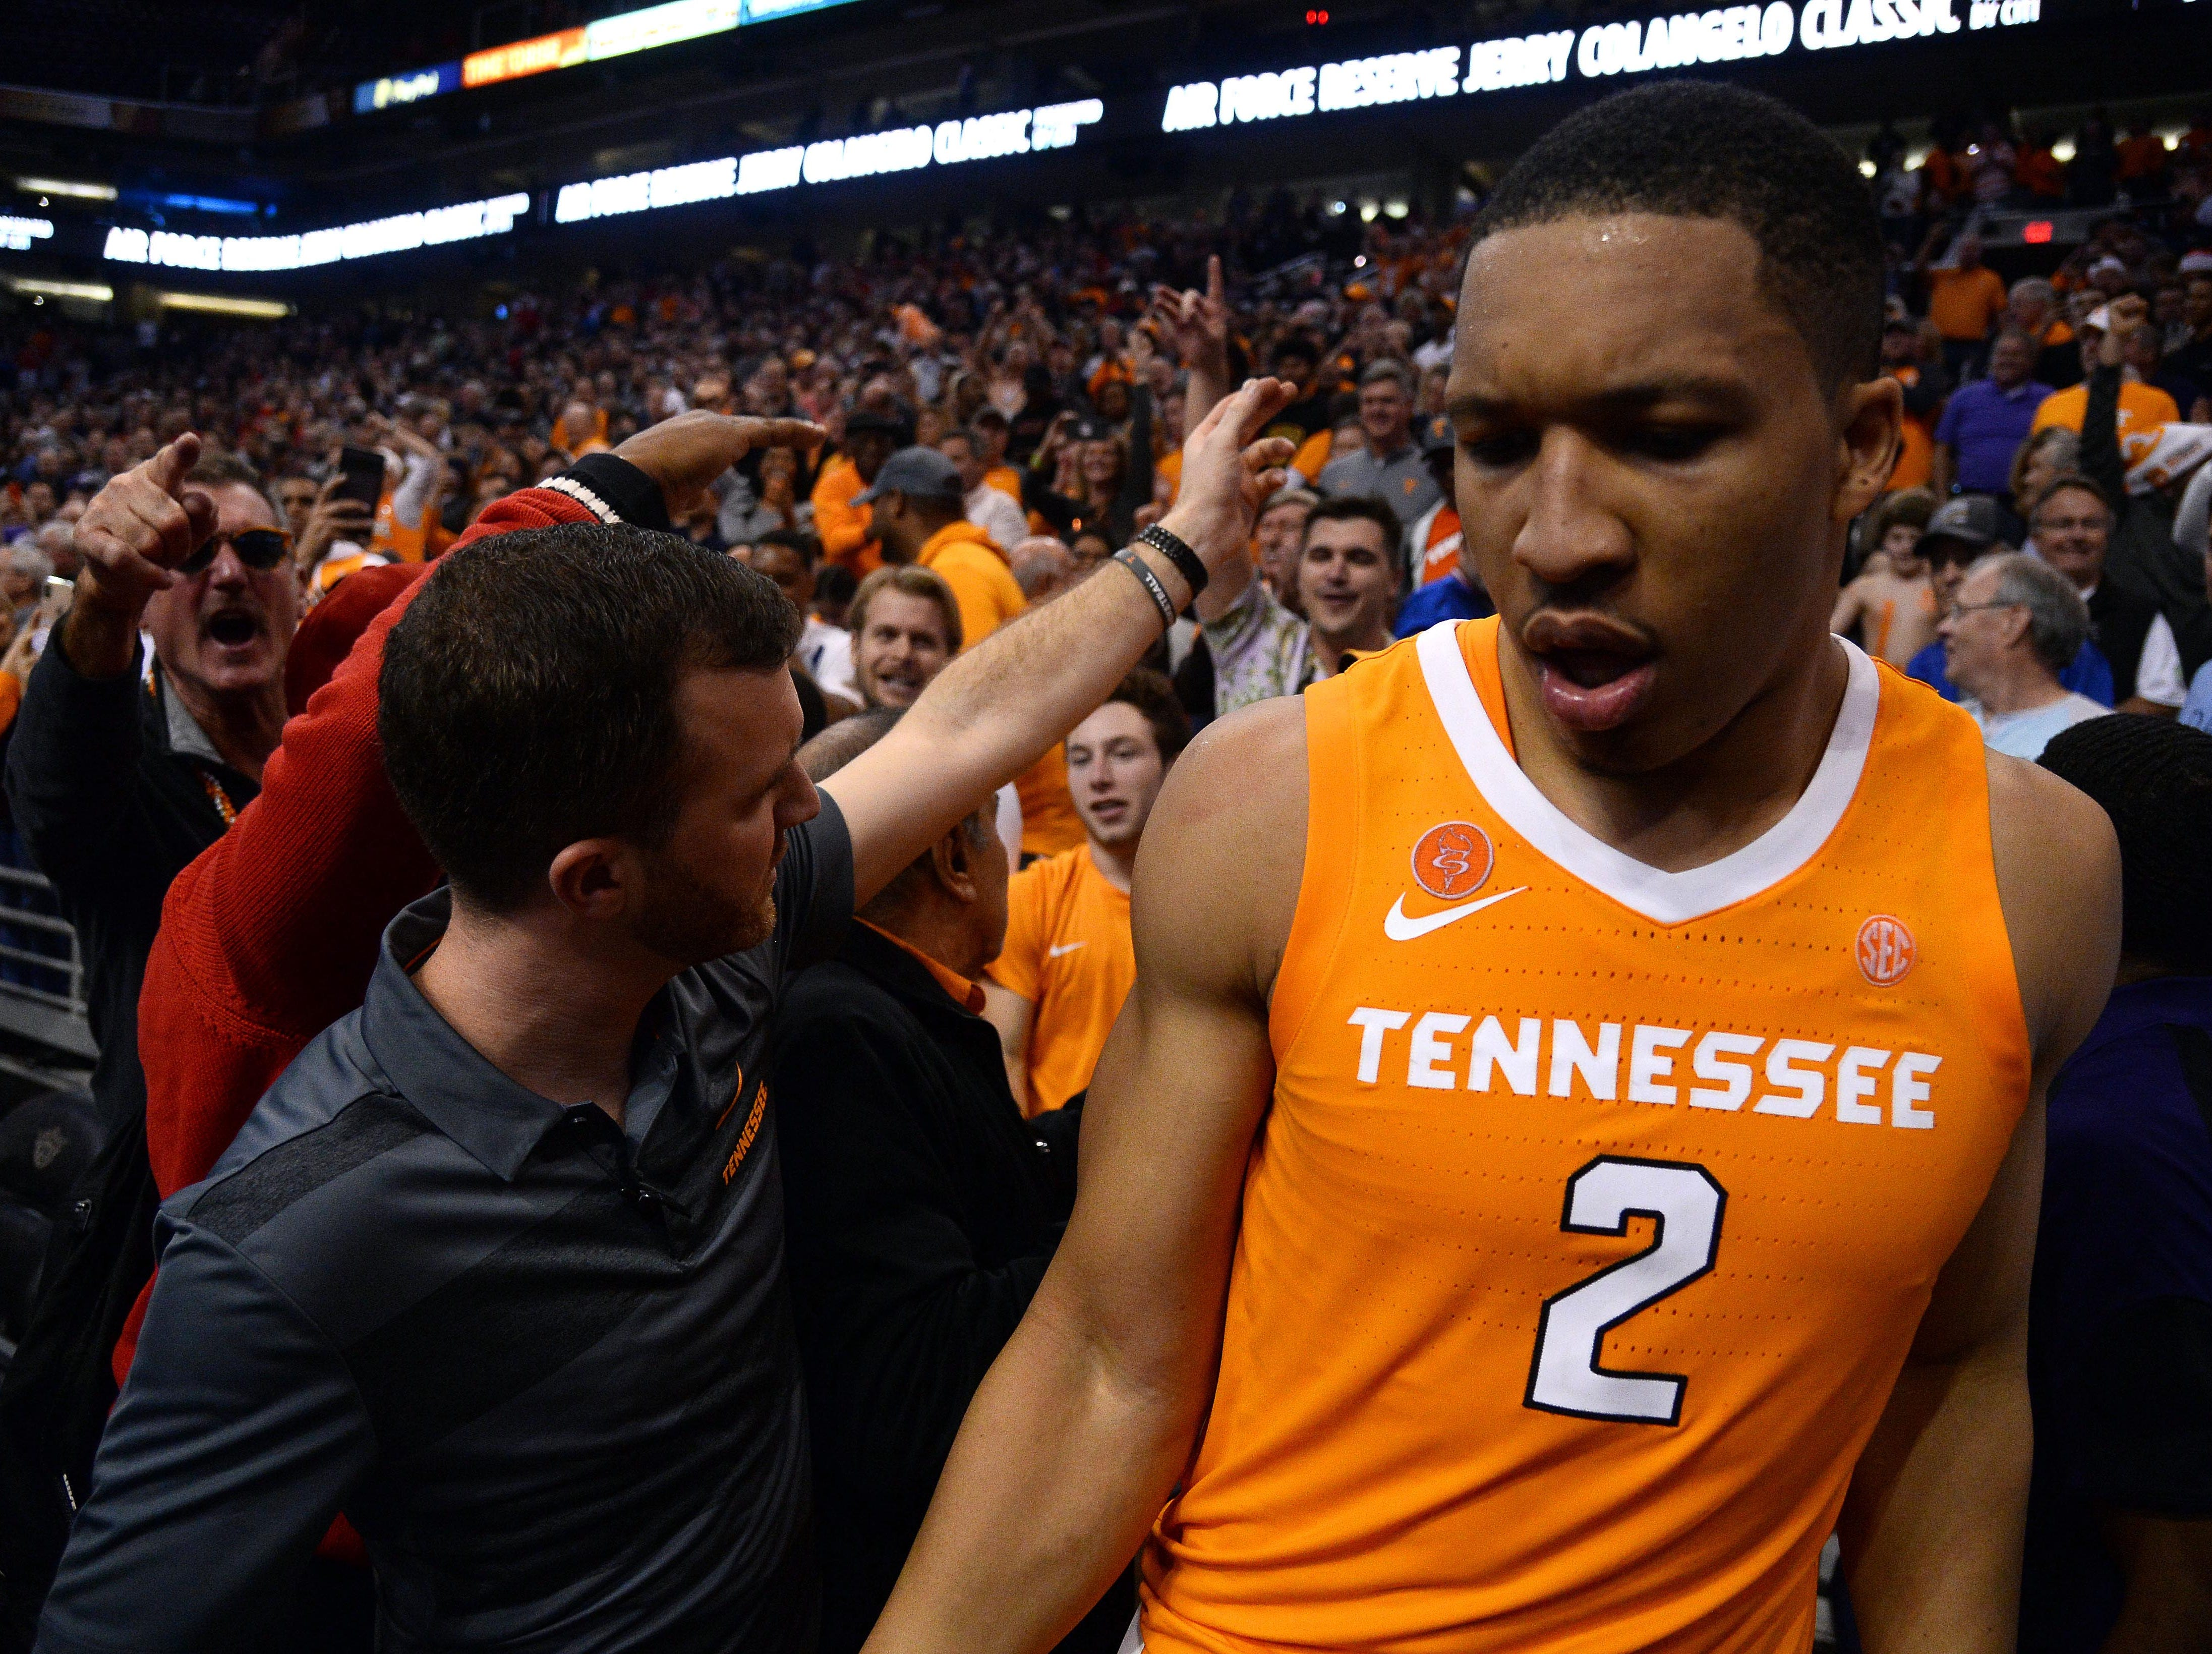 Dec 9, 2018; Phoenix, AZ, USA; Tennessee Volunteers forward Grant Williams (2) celebrates in the stands after defeating Gonzaga Bulldogs at Talking Stick Resort Arena.